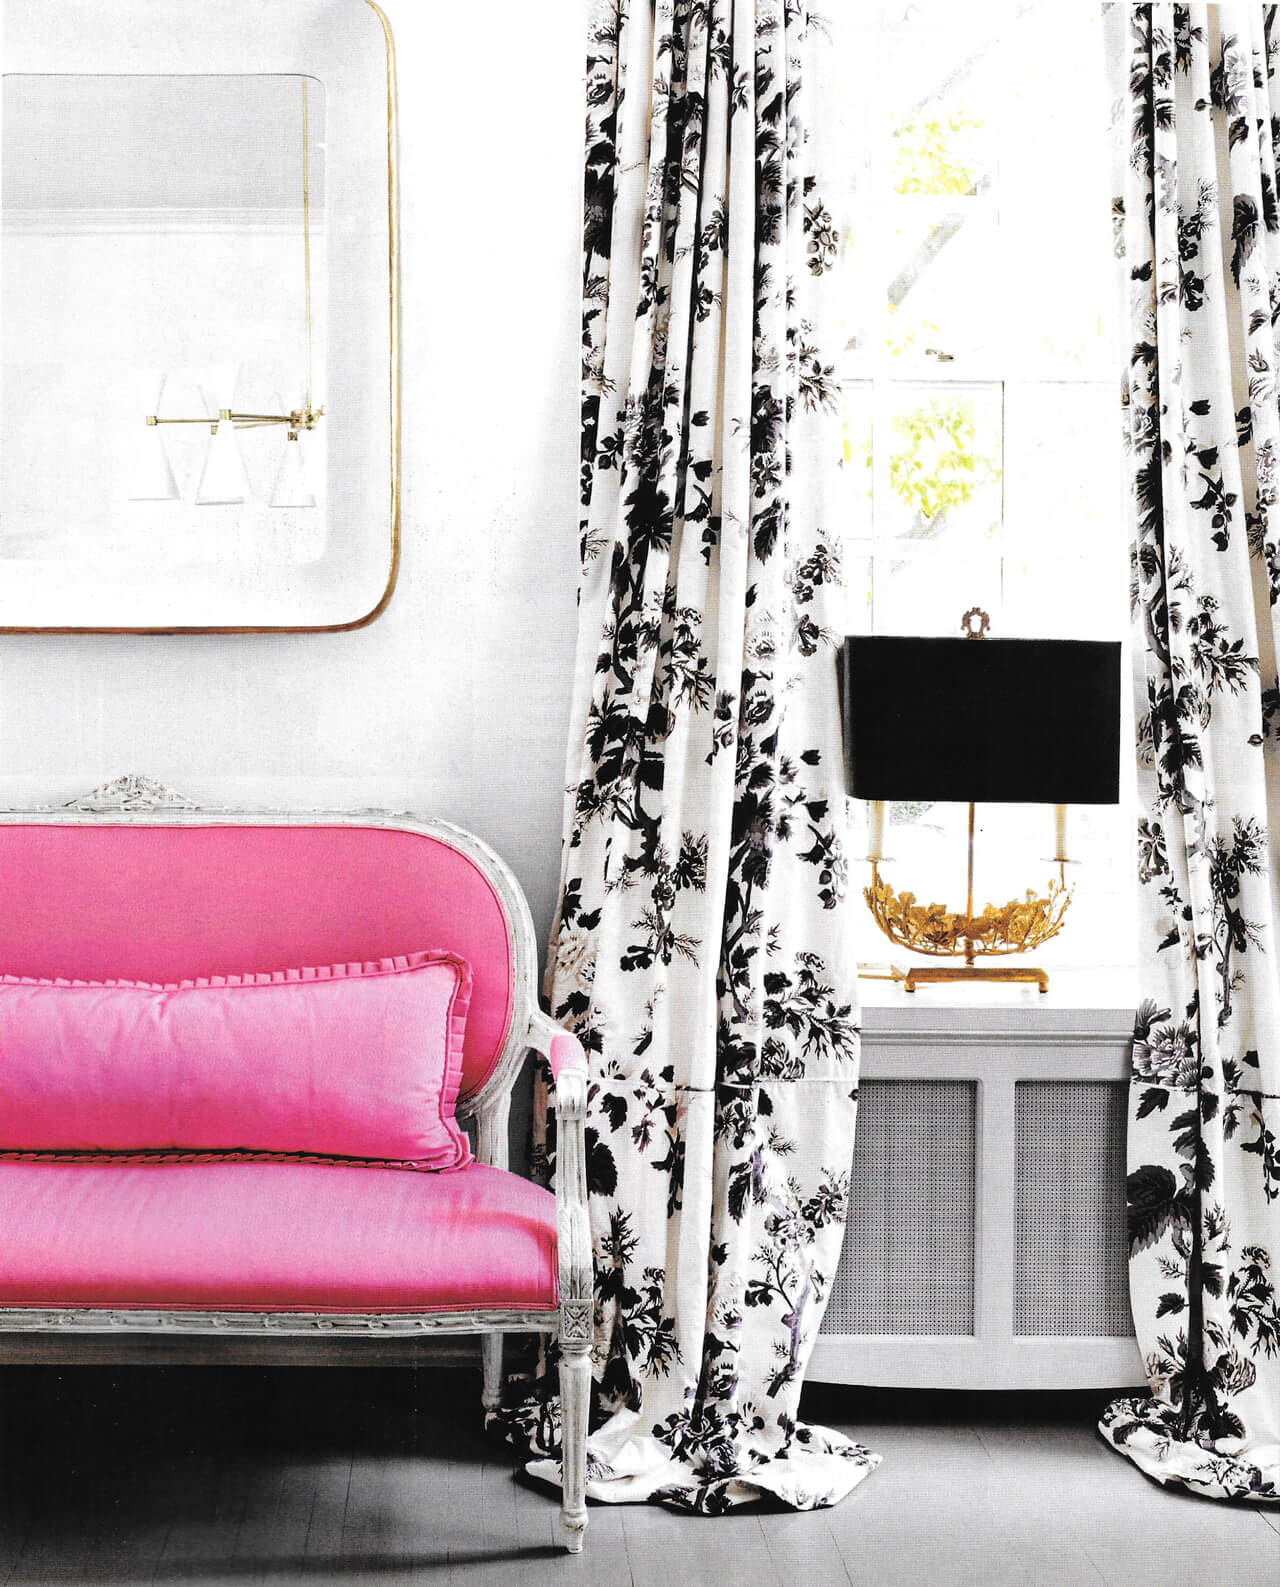 Pyne Hollyhock curtains in an apartment designed by Suellen Gregory for the House Beautiful September 2016 issue.